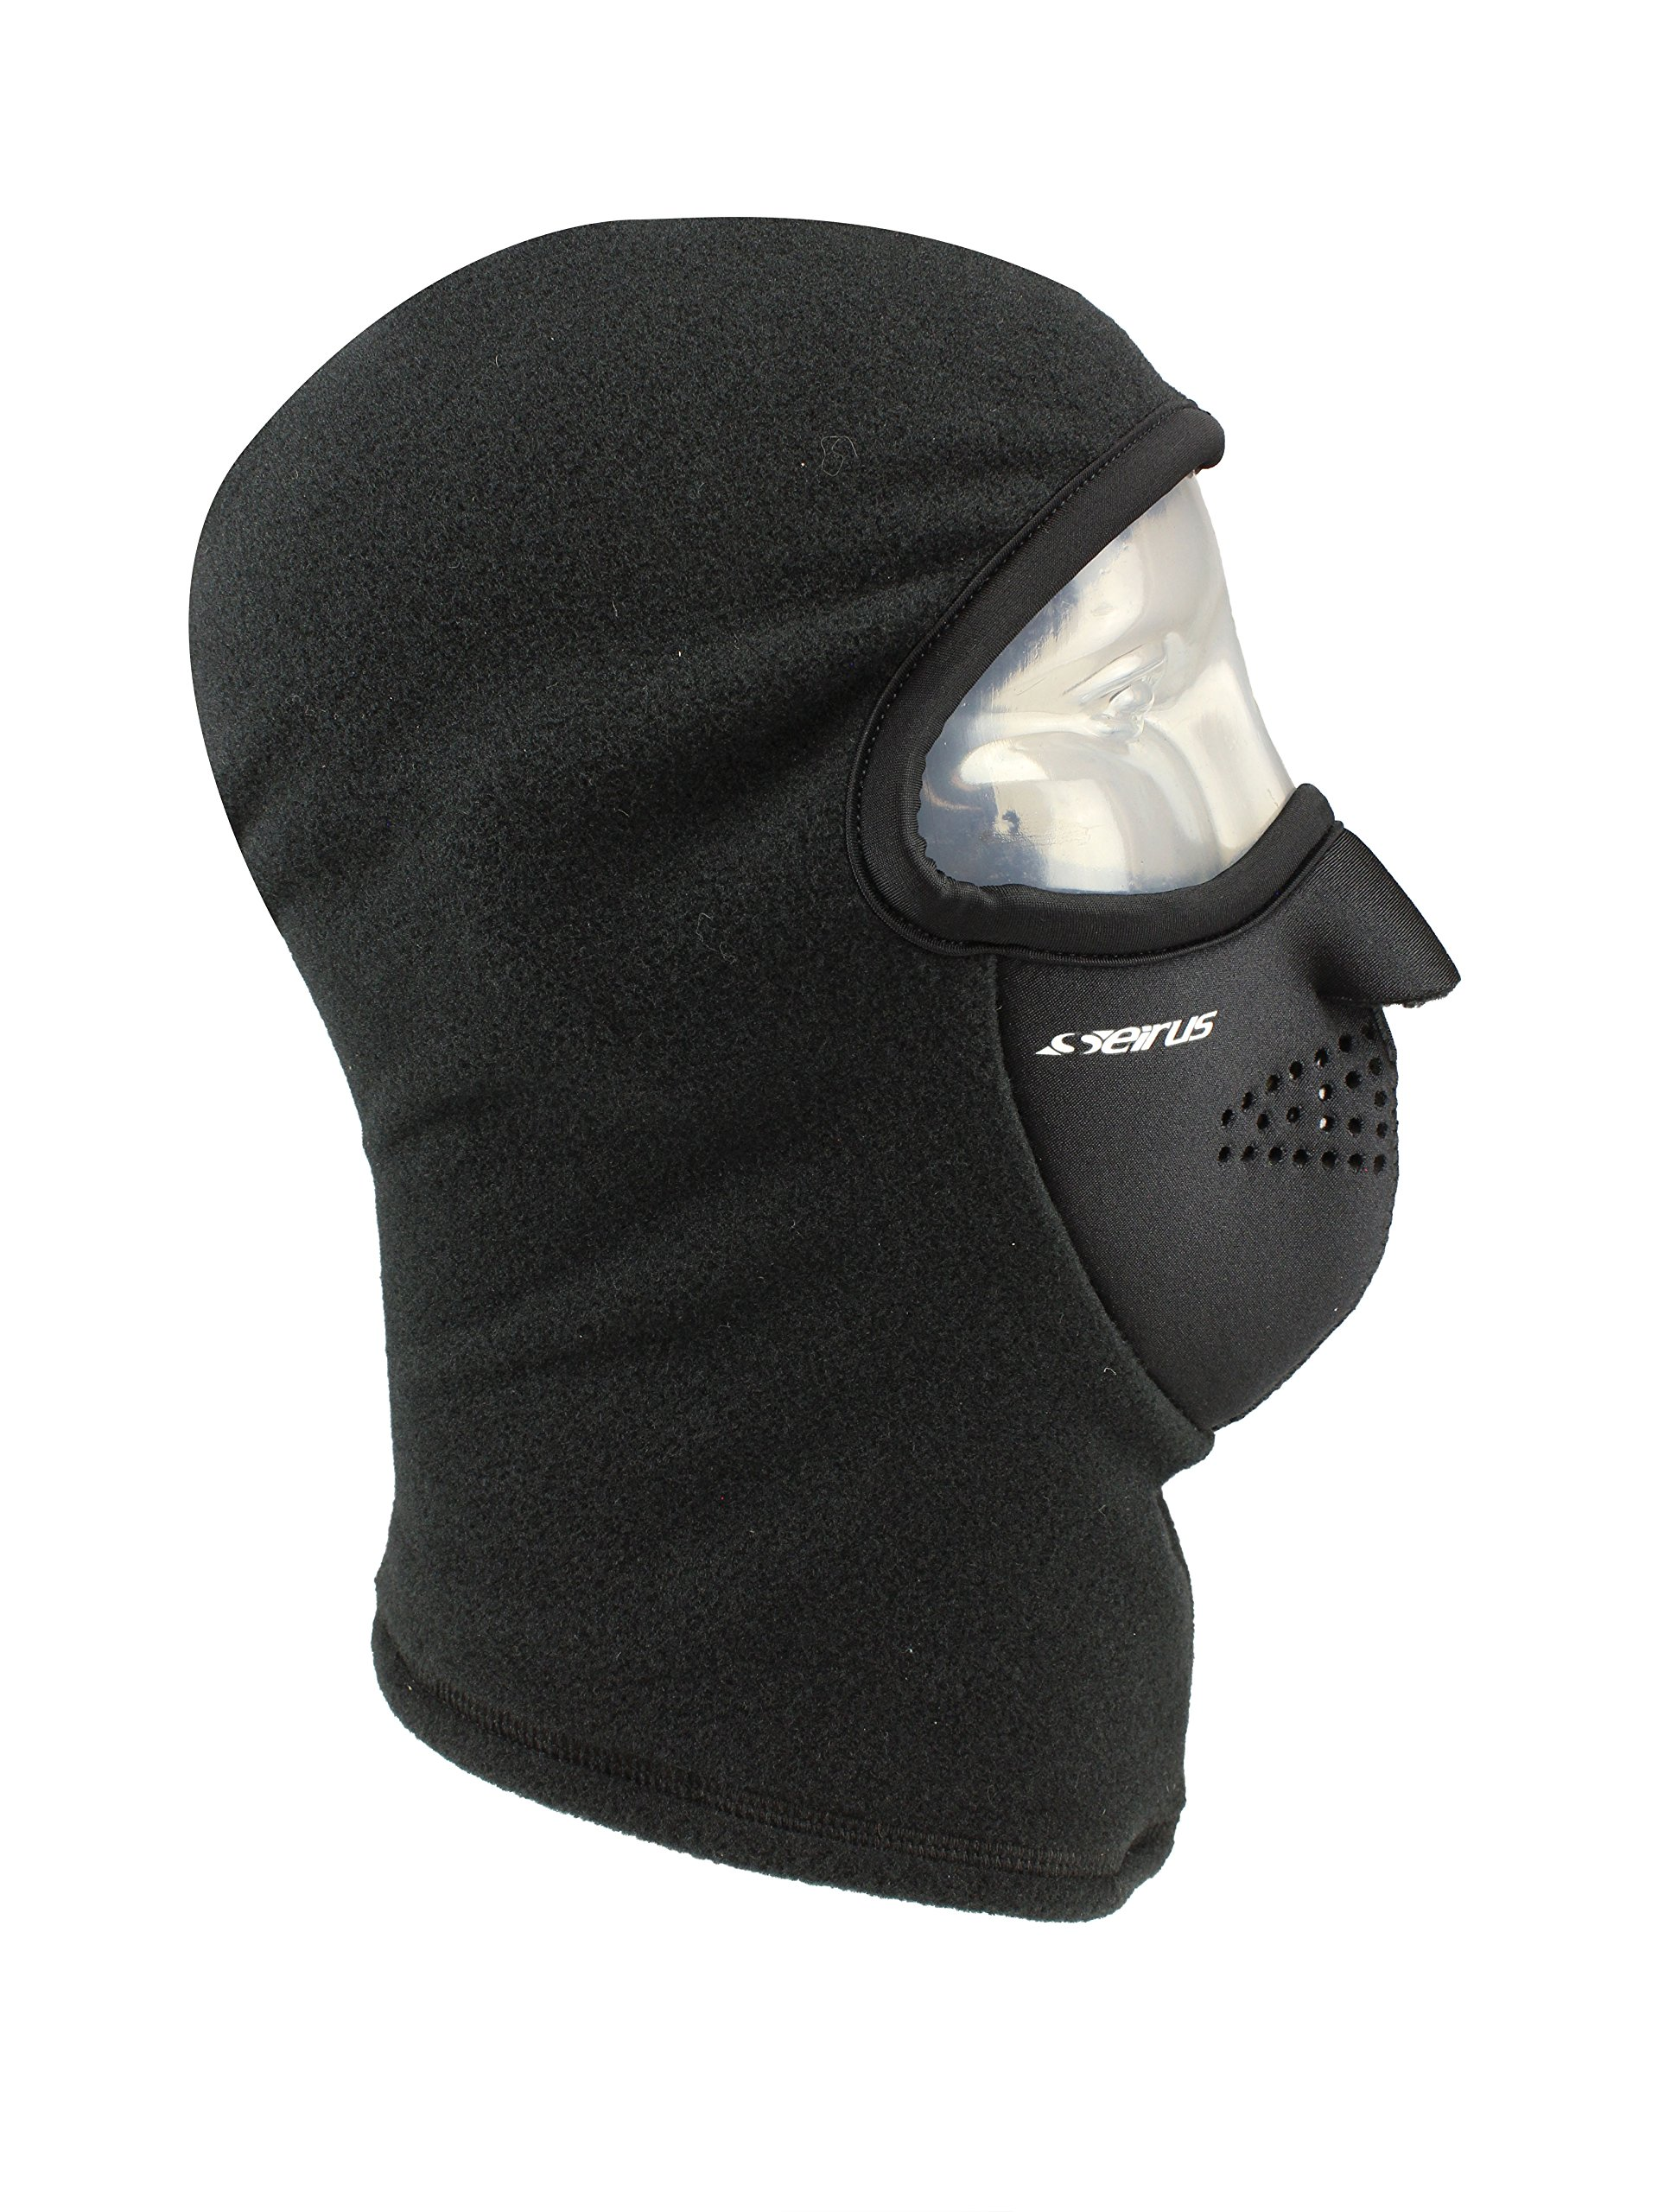 Seirus Innovation 8039 Neofleece Polartec Combo Clava - Winter Cold Weather Head, Face, and Neck Protection, Black, Small/Medium